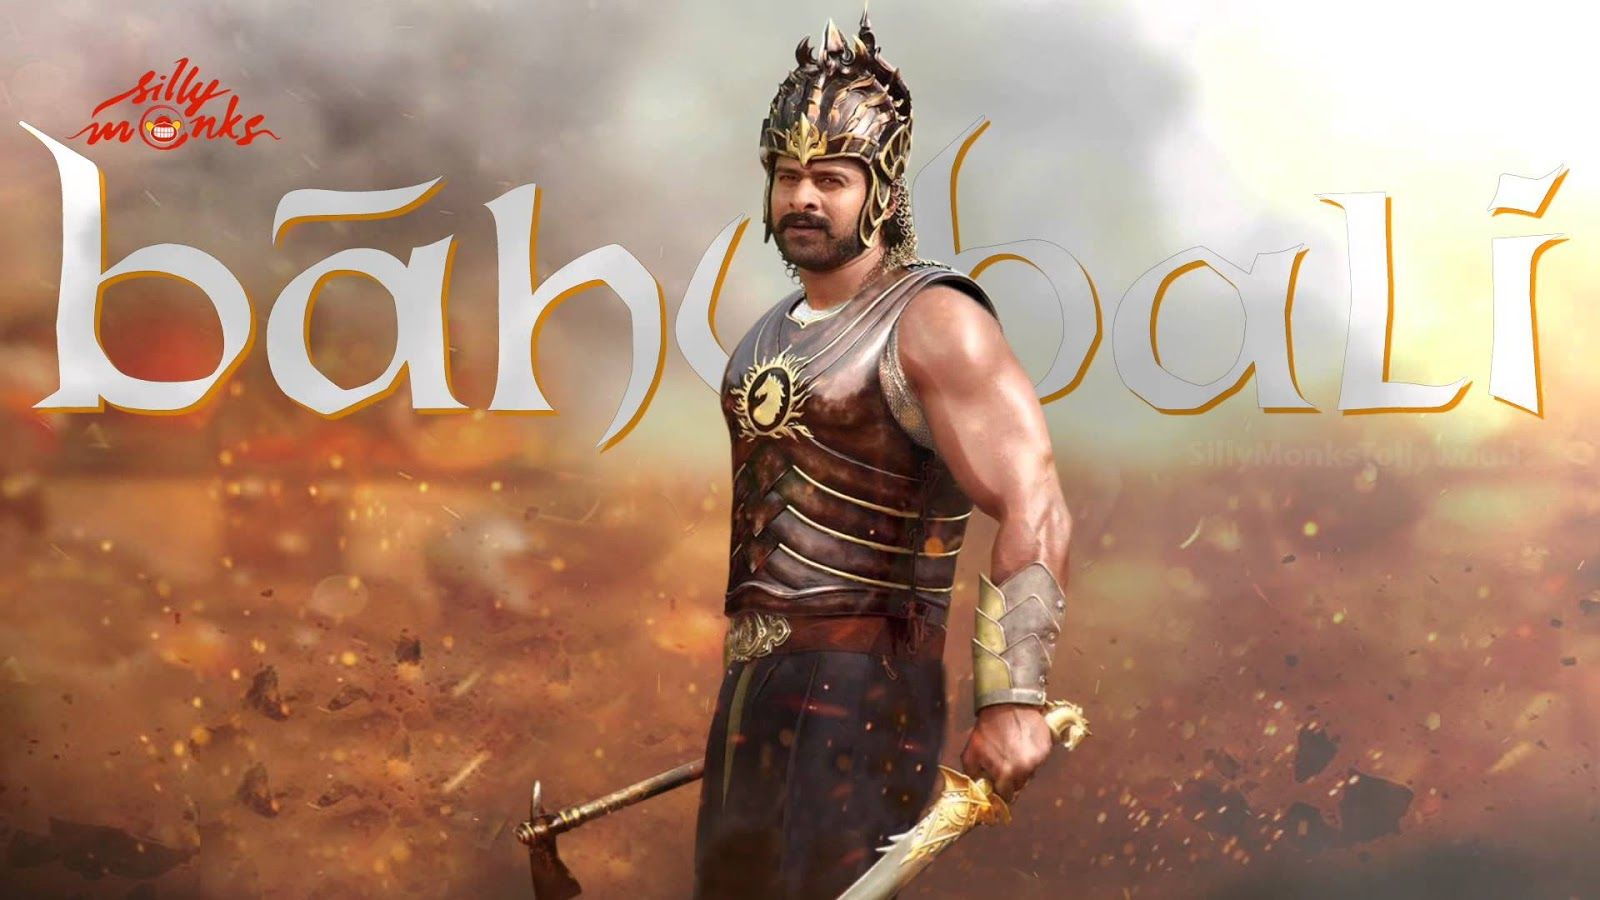 Wallpaper download bahubali 2 - Bahubali 2 Hd Images Photos Wallpapers Latest Free Hd Wallpapers